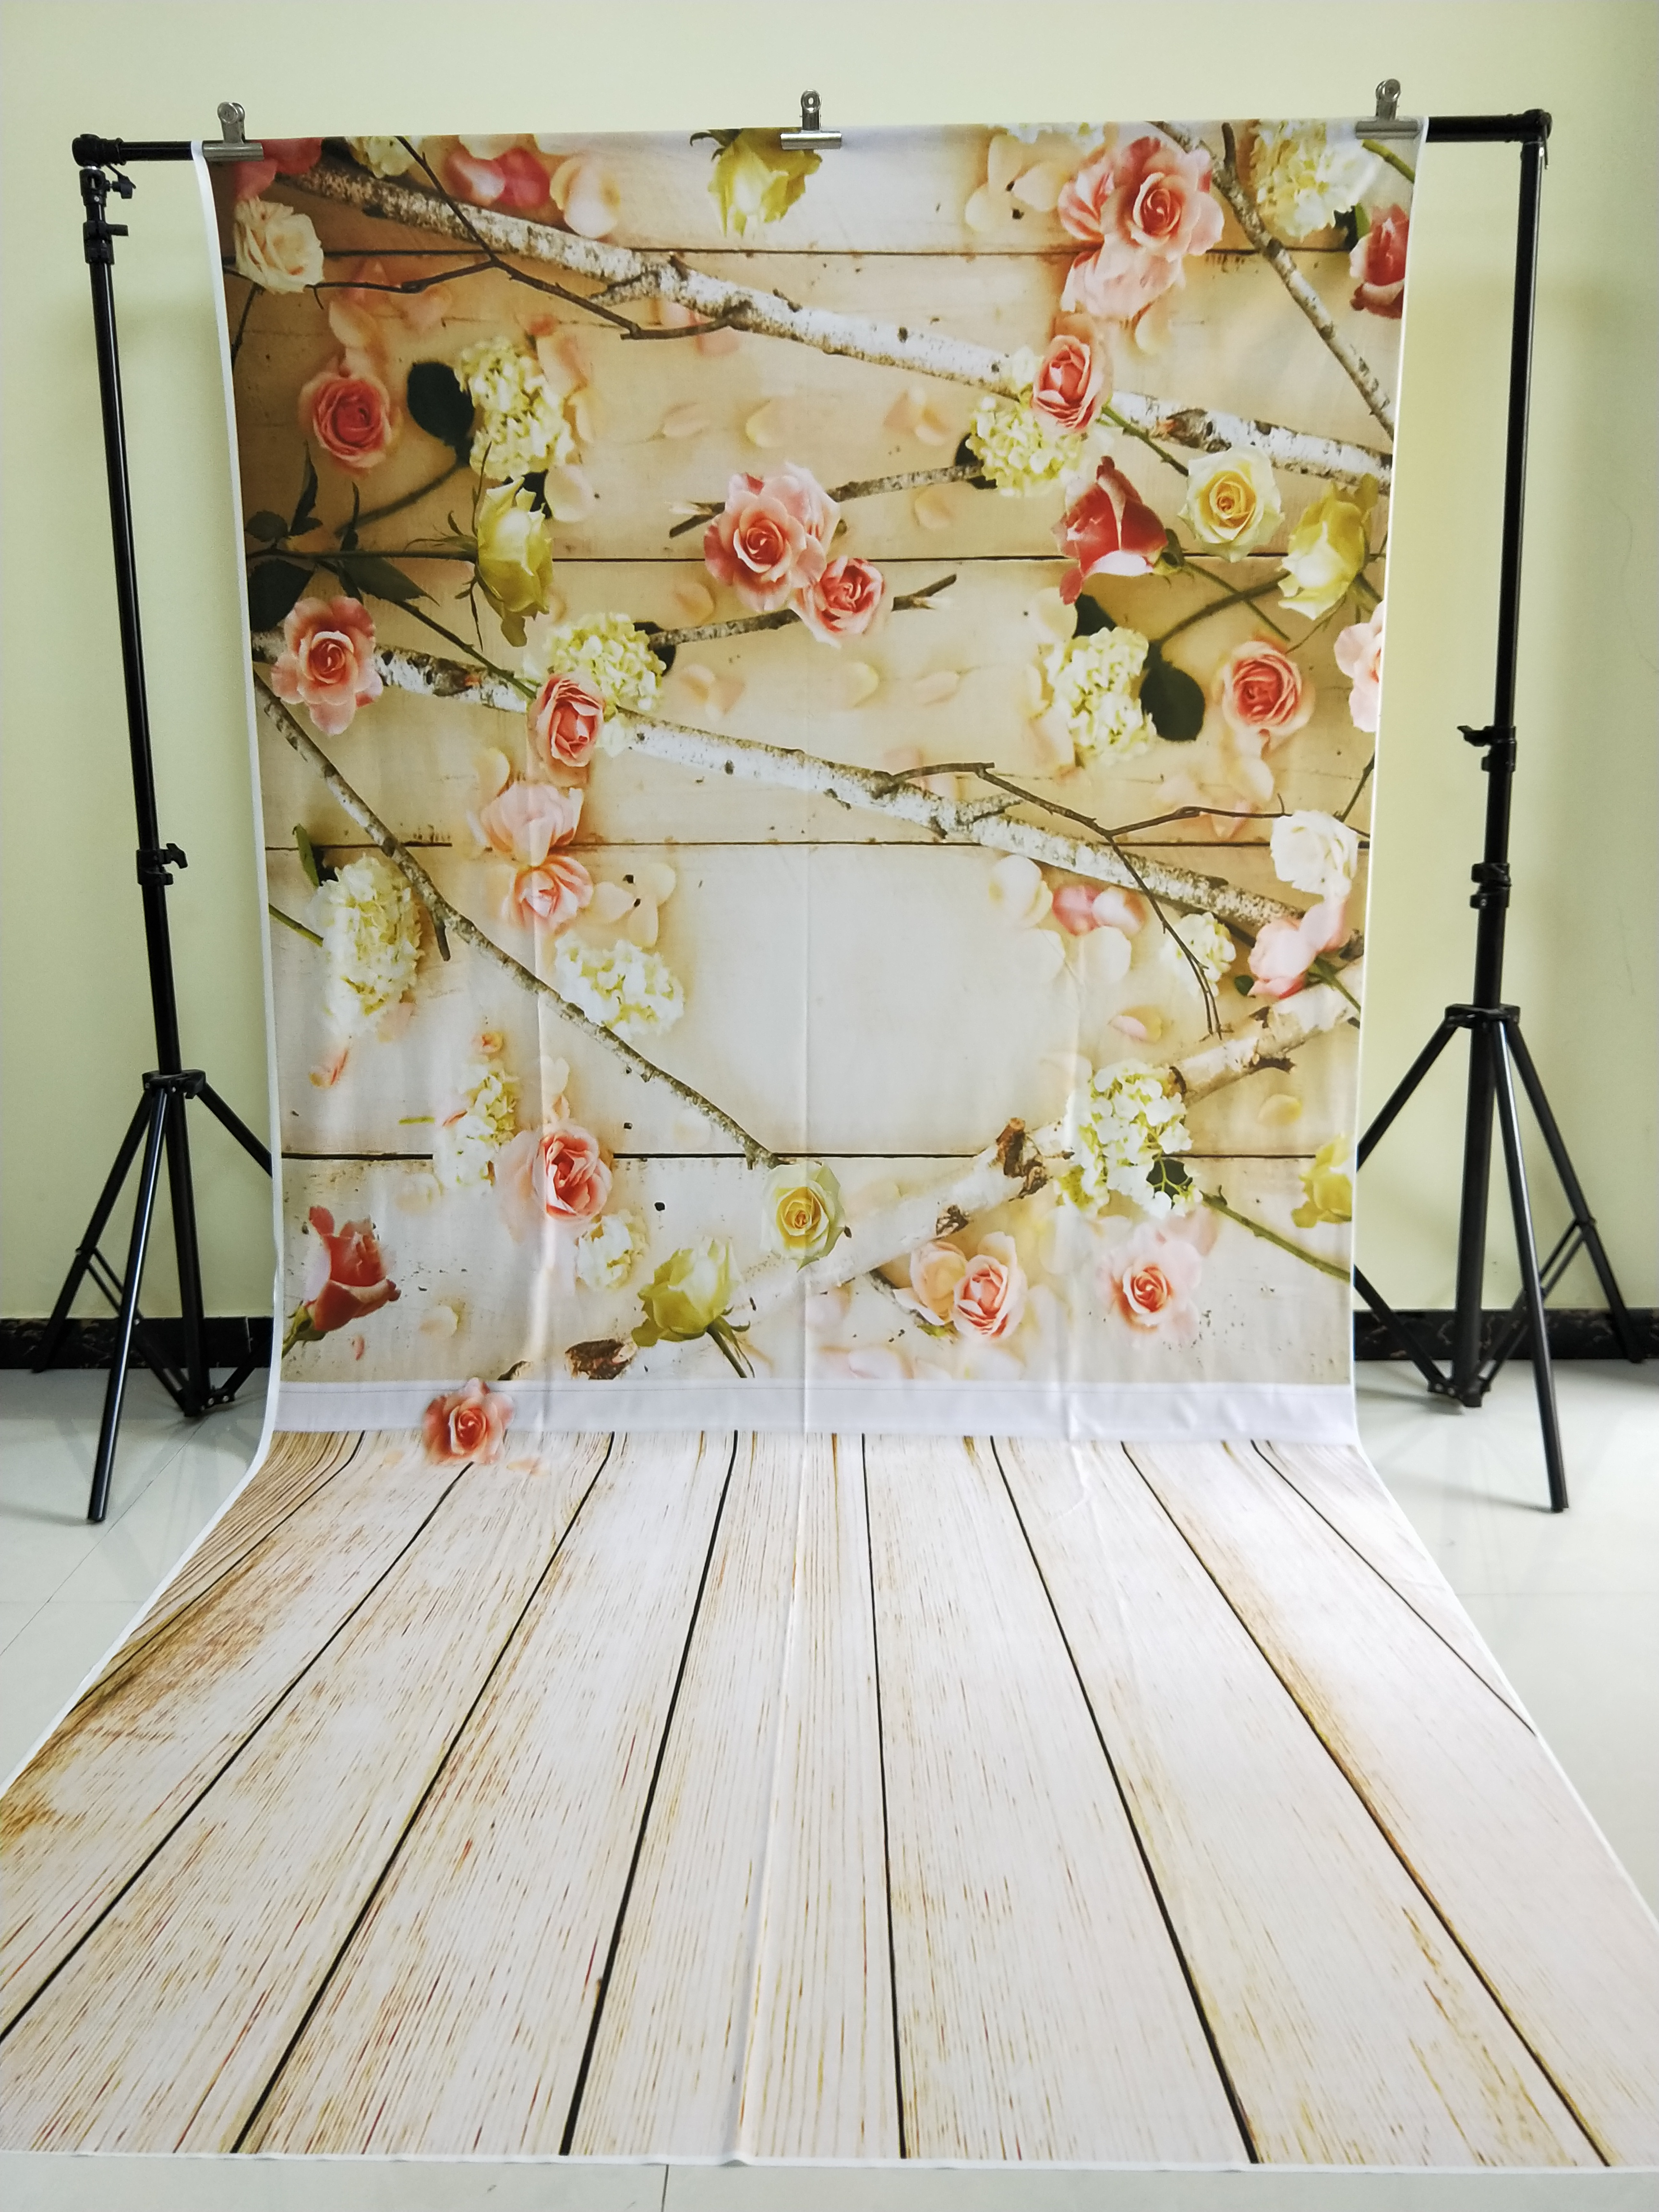 HUAYI 5x10ft Cotton Polyester Wood Floor Flowers Photography Backdrop Washable Photo Studios Baby Props Background KP-336<br>